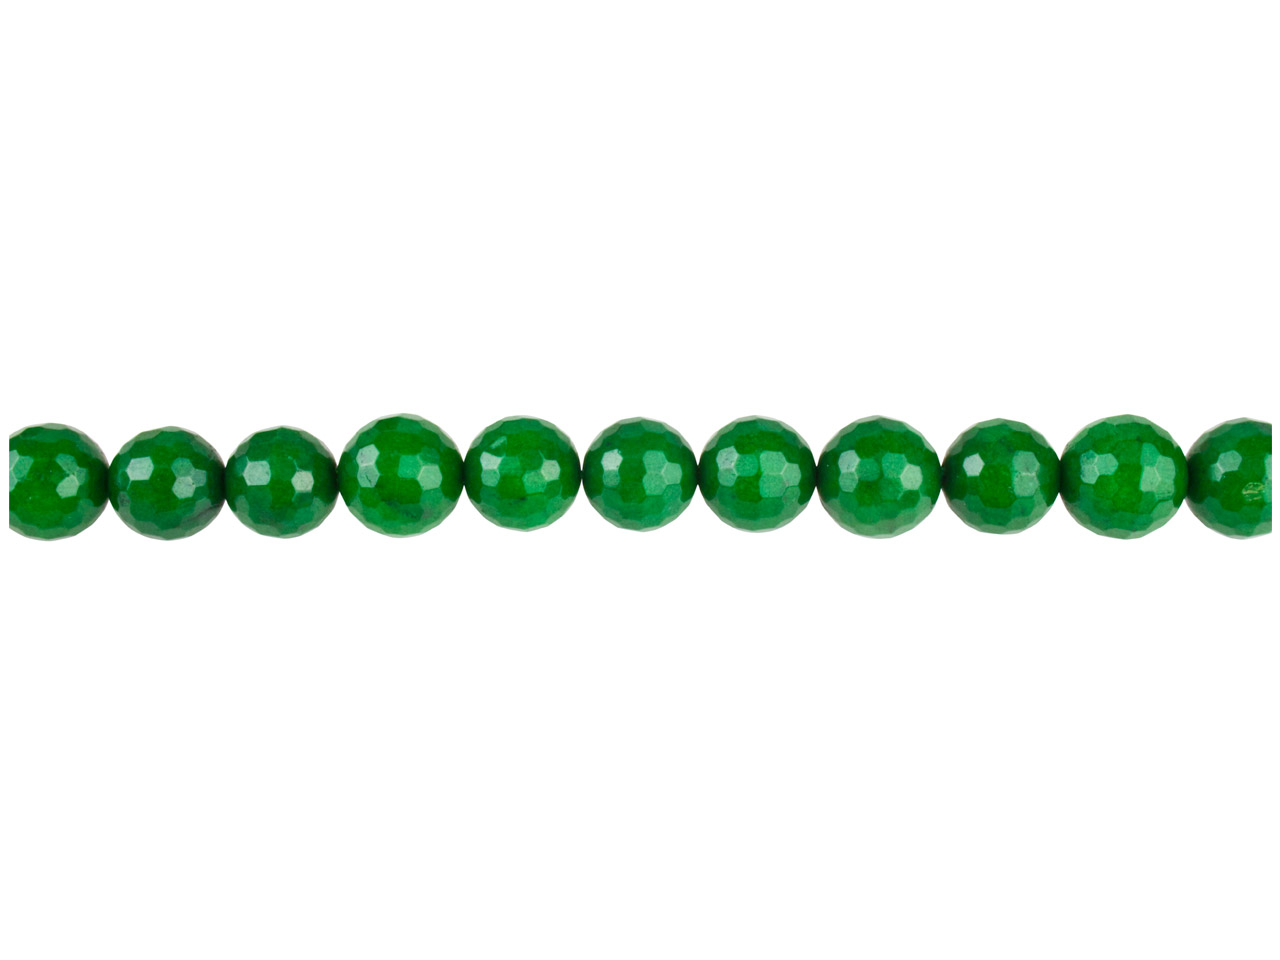 Dyed Green Jade Faceted Semi       Precious Round Beads 6mm, 16